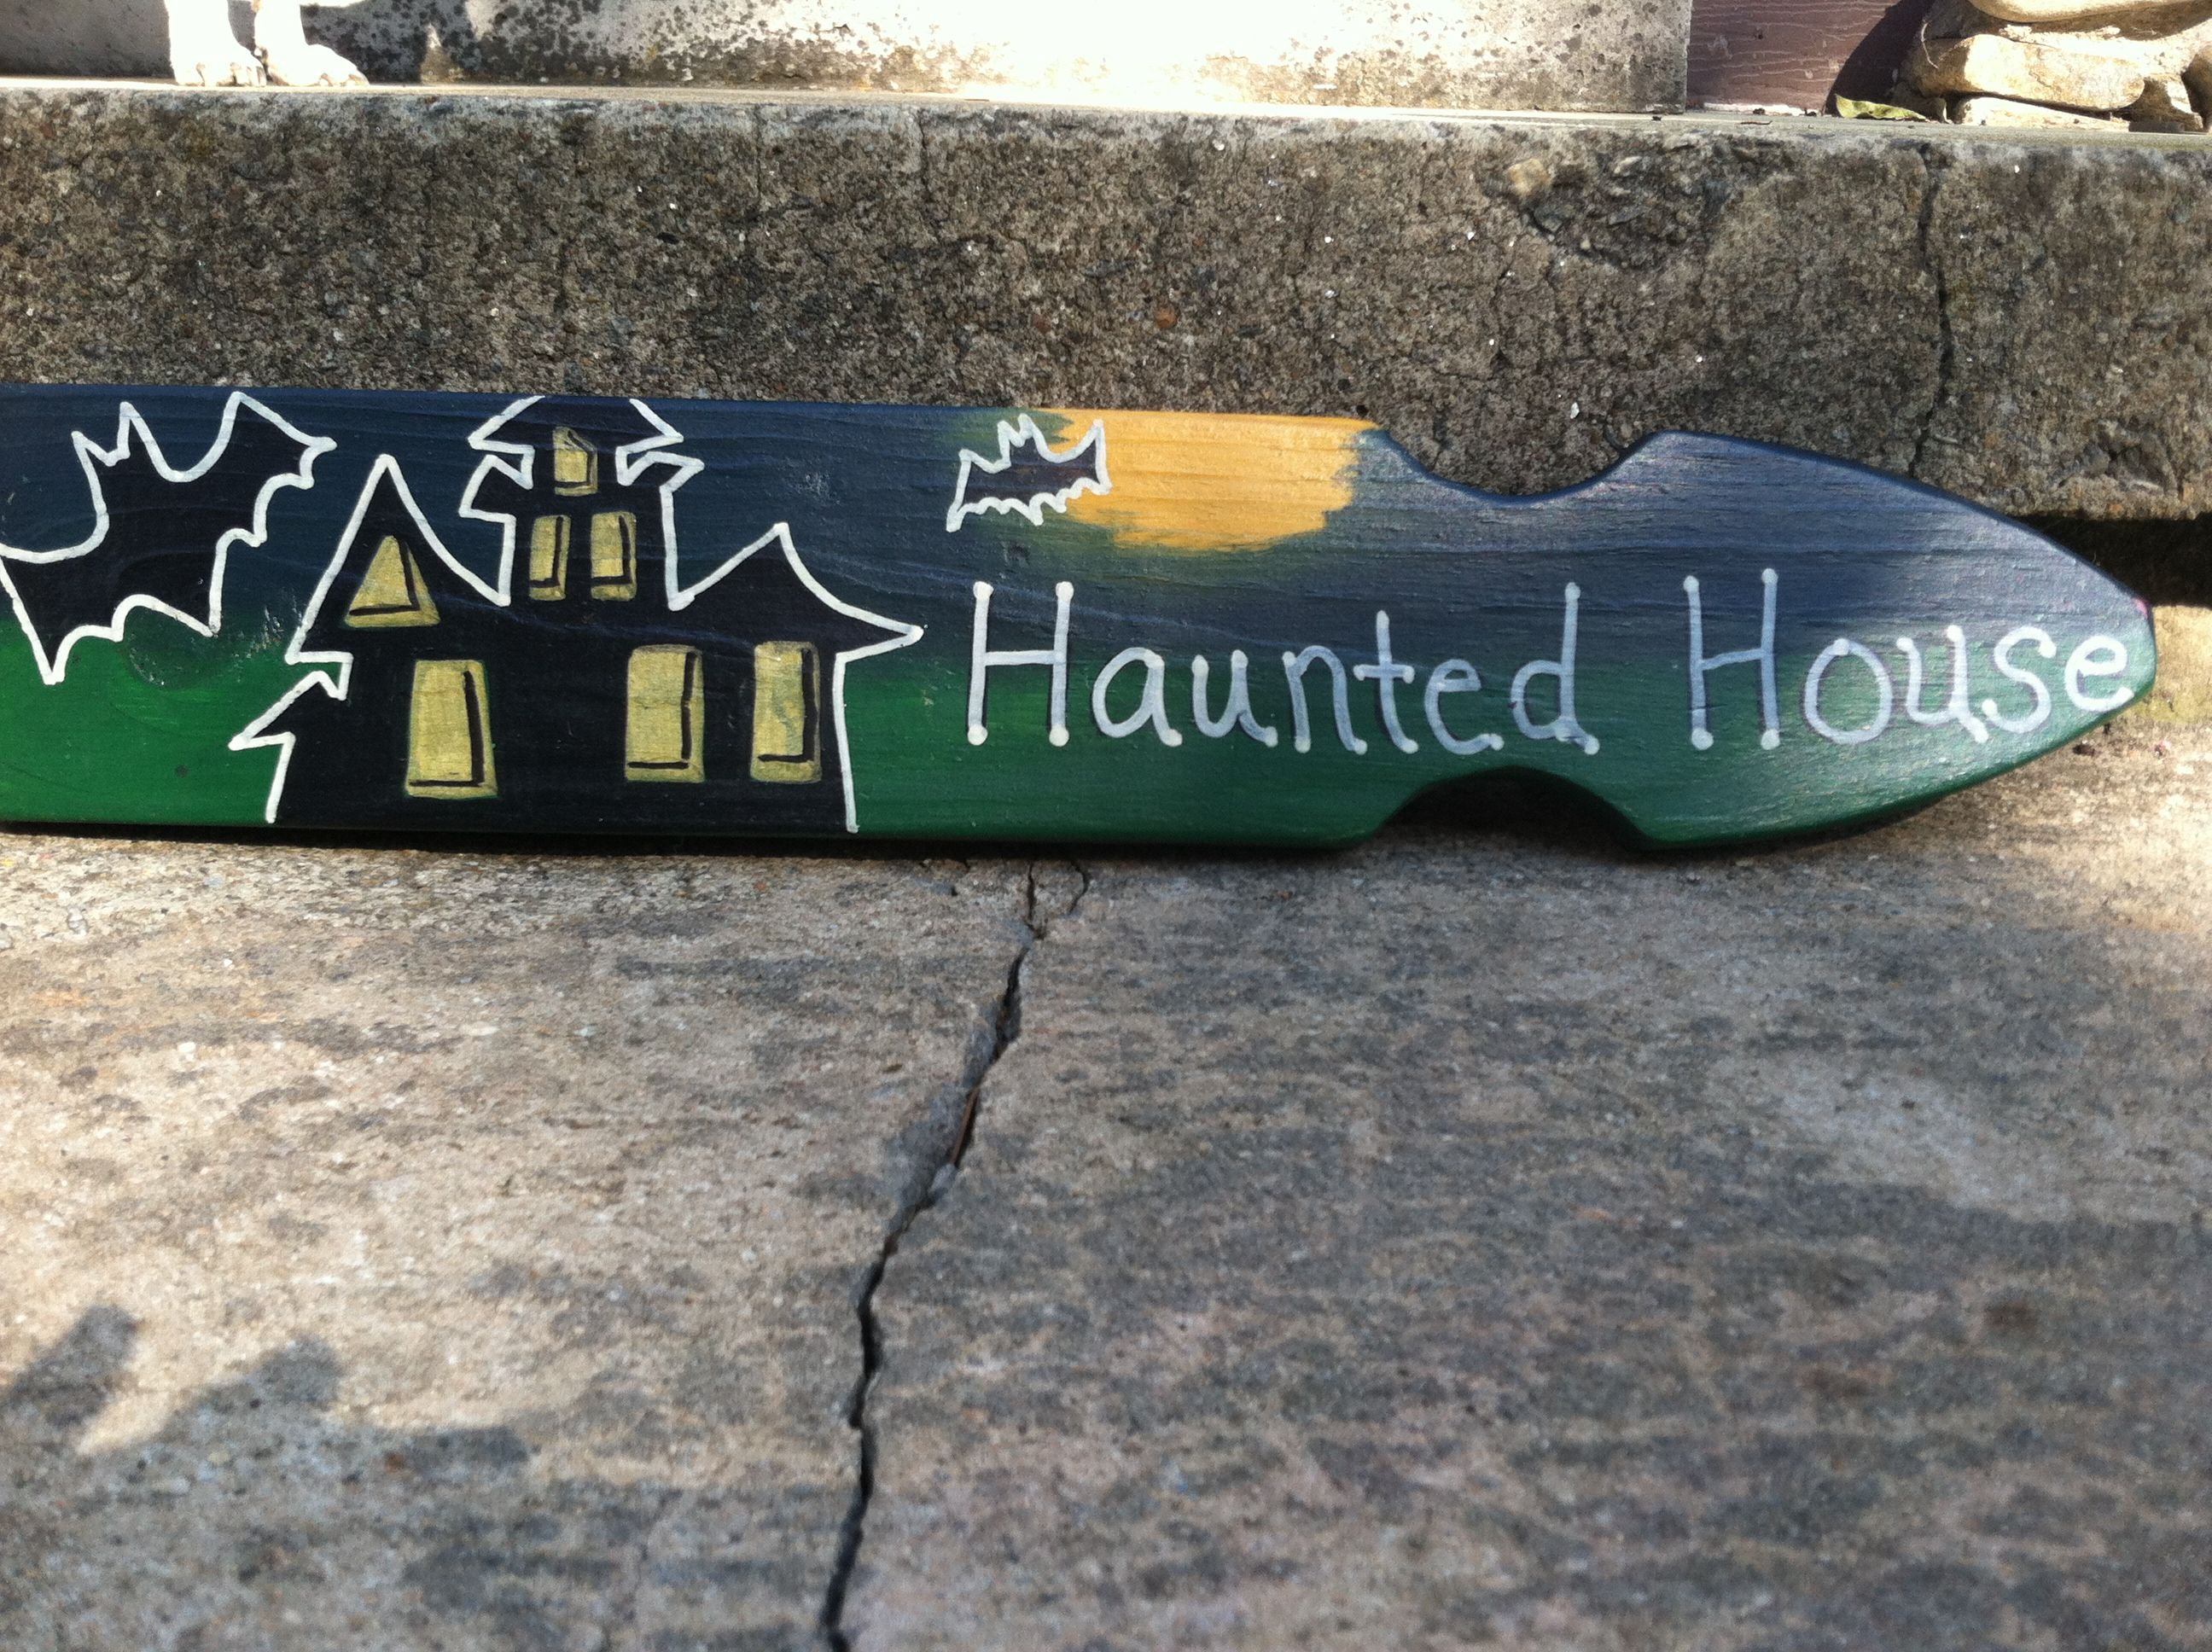 Halloween Hand Painted Wooden Sign By Barn Country Furniture Haunted House Www Barncountryfurnitu Hand Painted Wooden Signs Painted Wooden Signs Wooden Signs